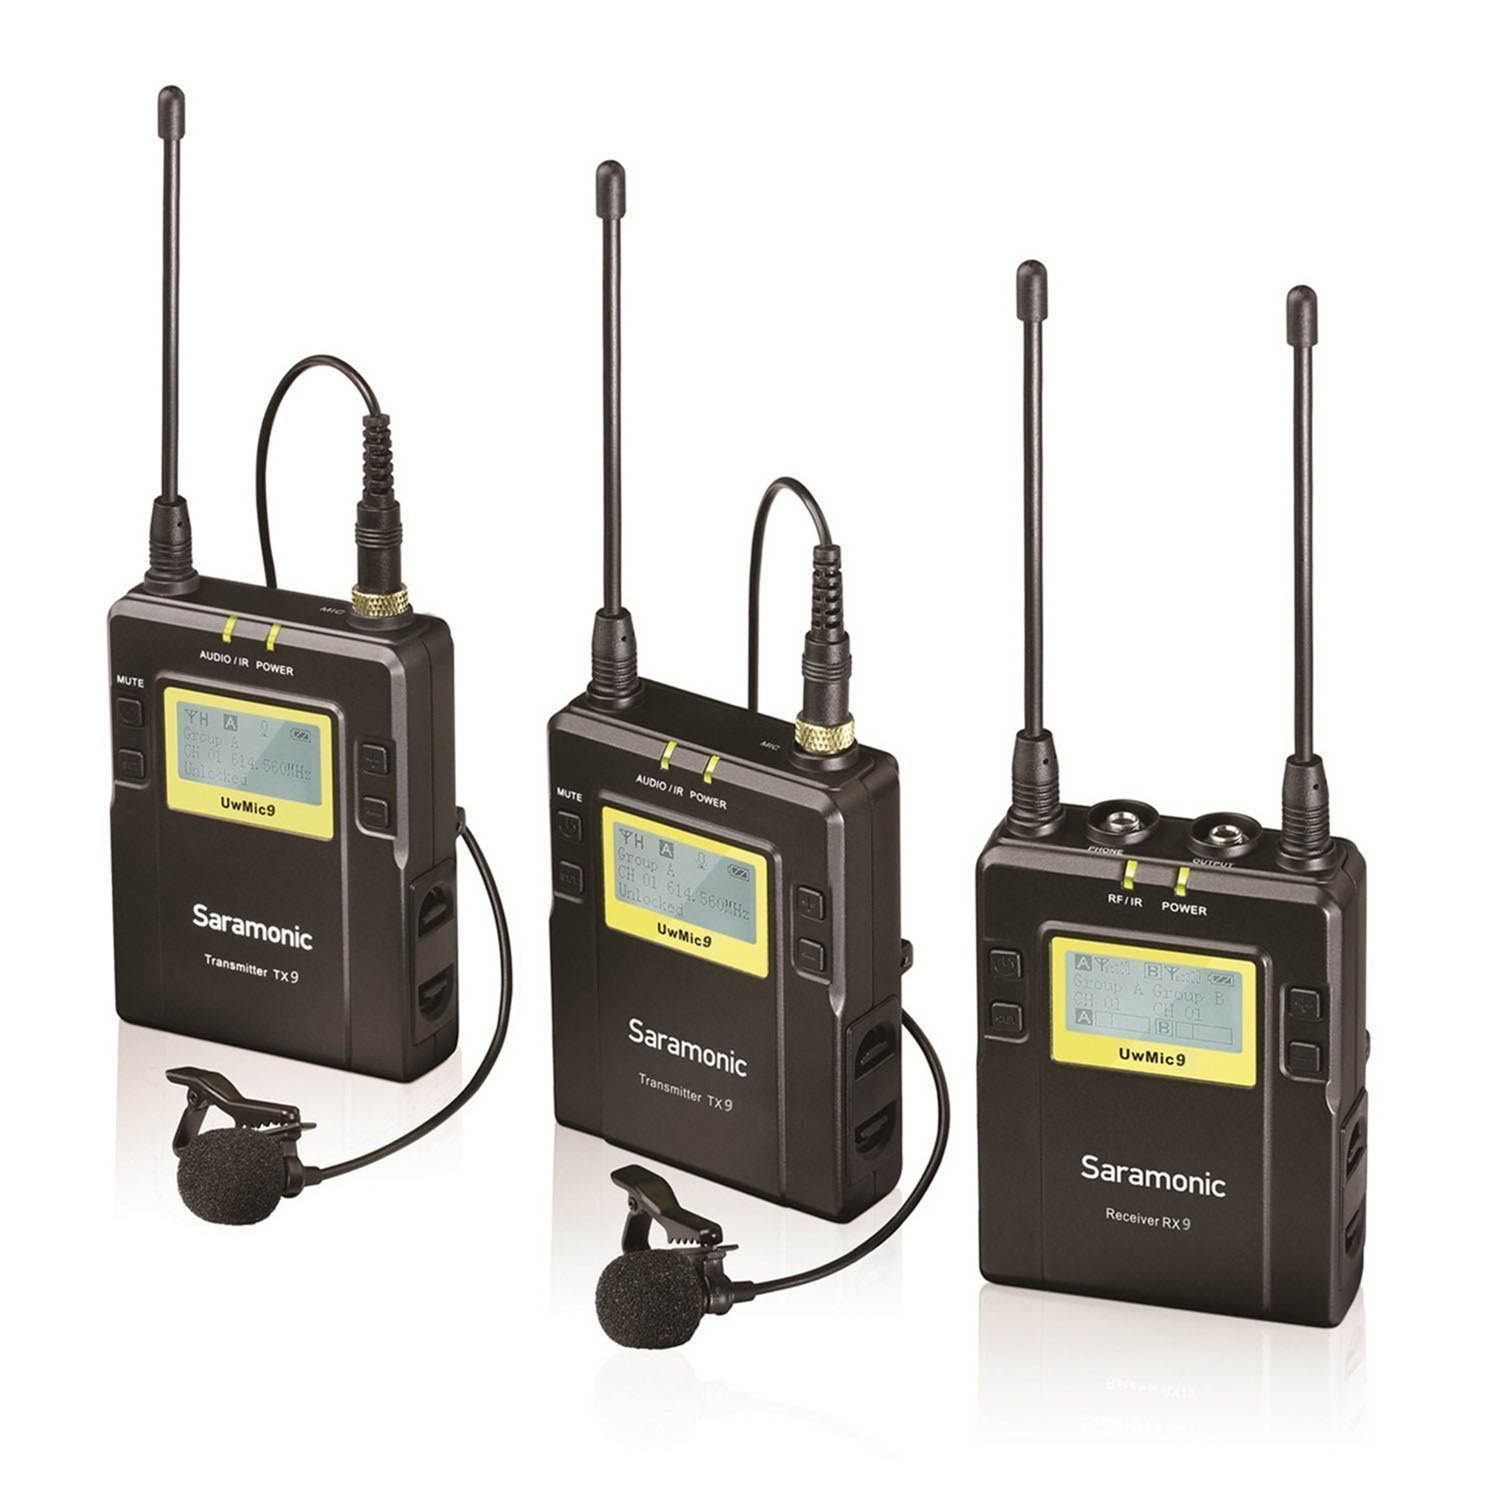 Saramonic UWMIC10 96-Channel Digital UHF Wireless Lavalier Microphone System with 2 Bodypack Transmitters, Portable Receiver, 2 Lav Mics, Shoe Mount, XLR/3.5mm Outputs + More